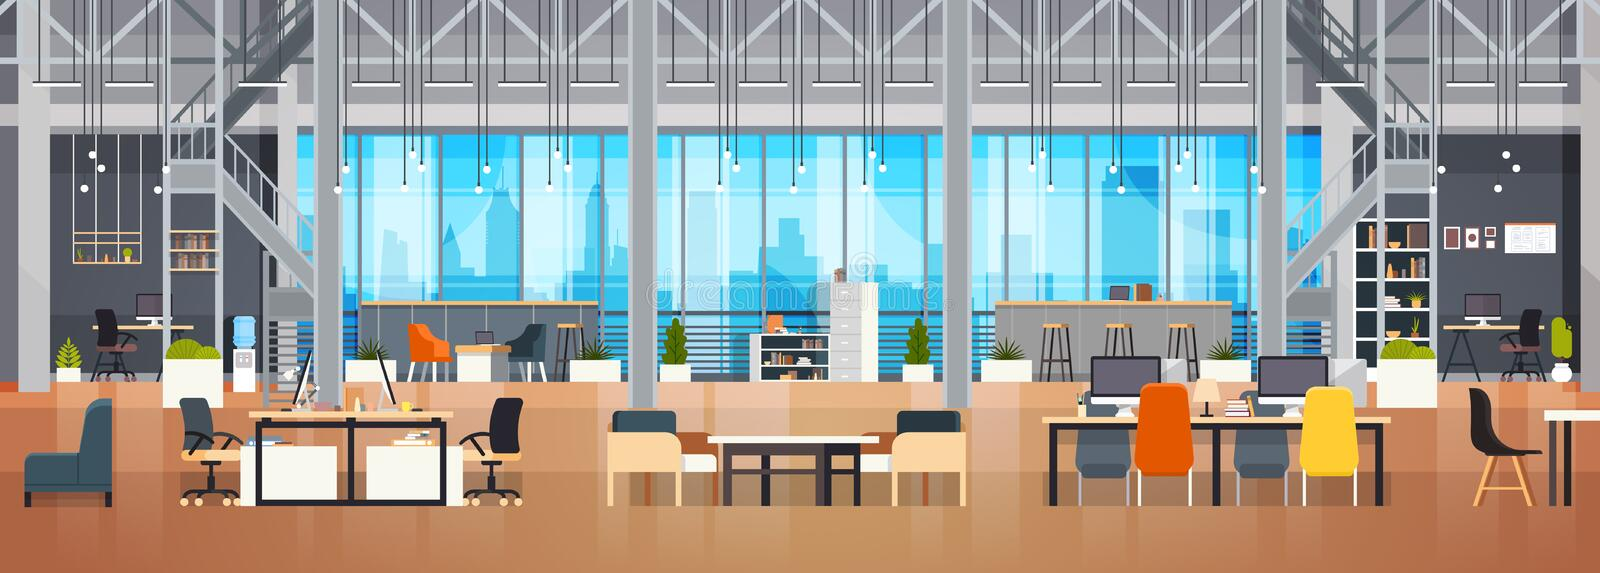 Empty Coworking Space Interior Modern Coworking Office Creative Workplace Space Horizontal Banner vector illustration